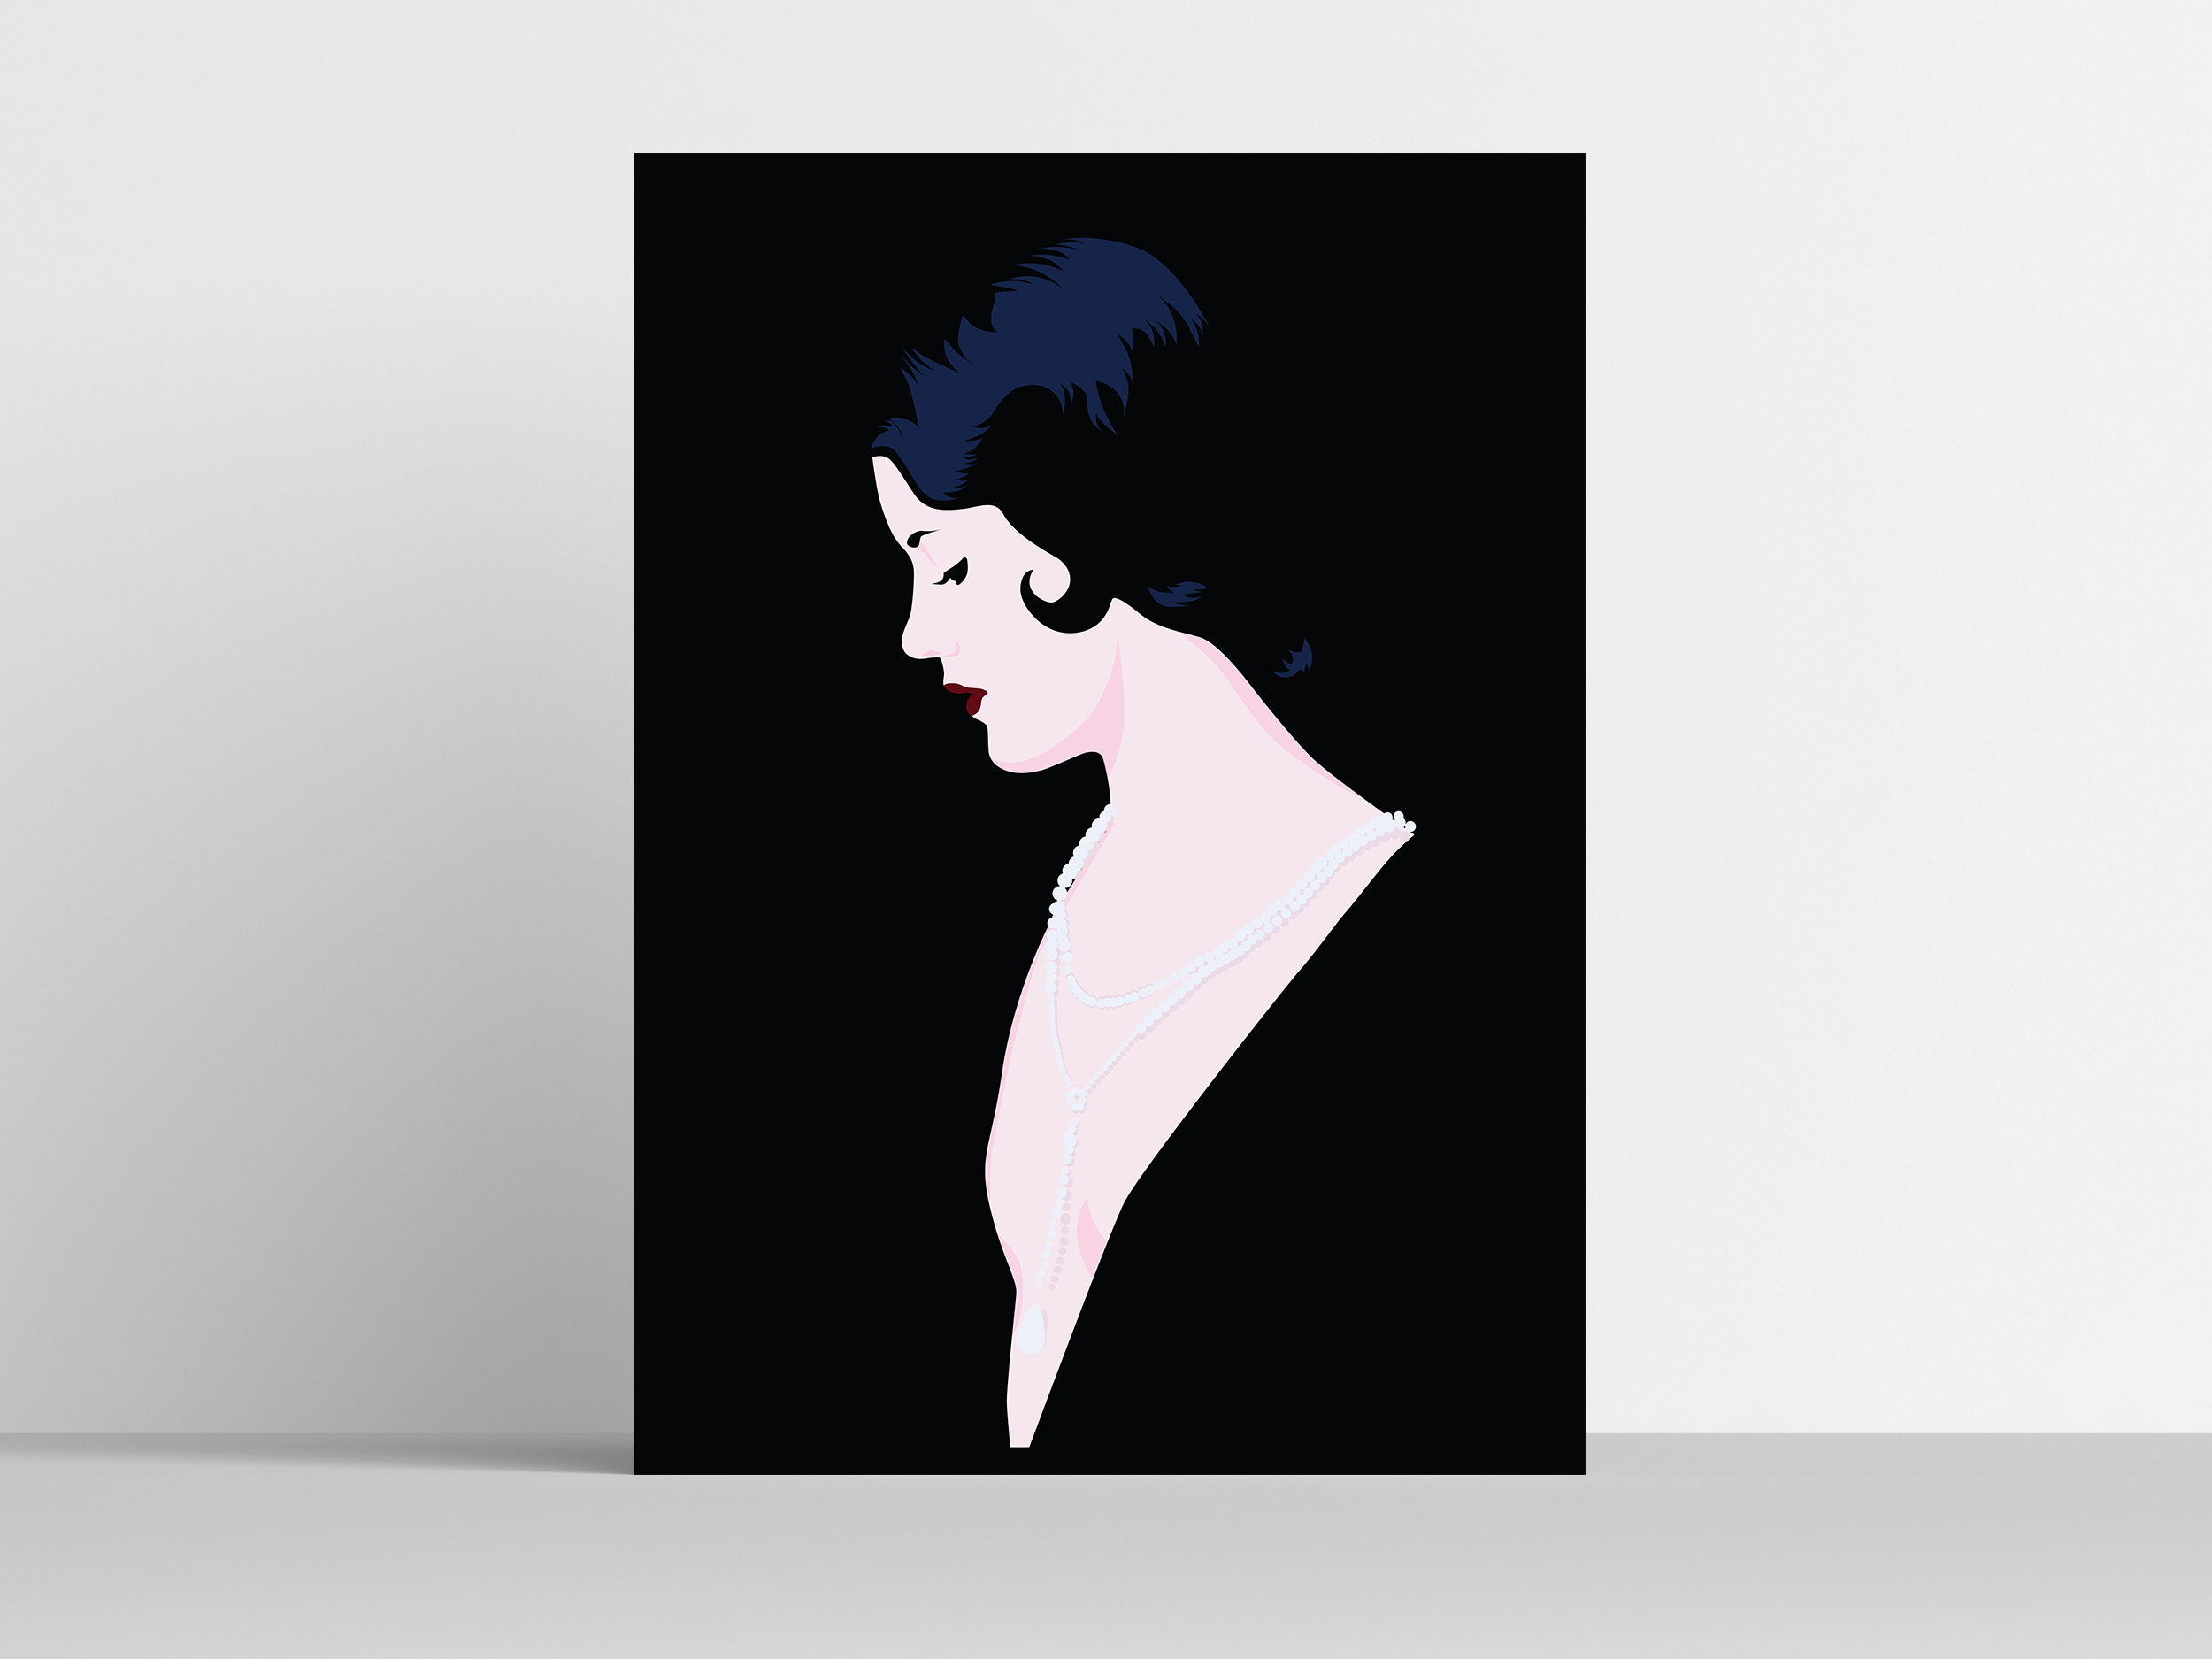 One Poster Mockup - Lady in Pearls.jpg